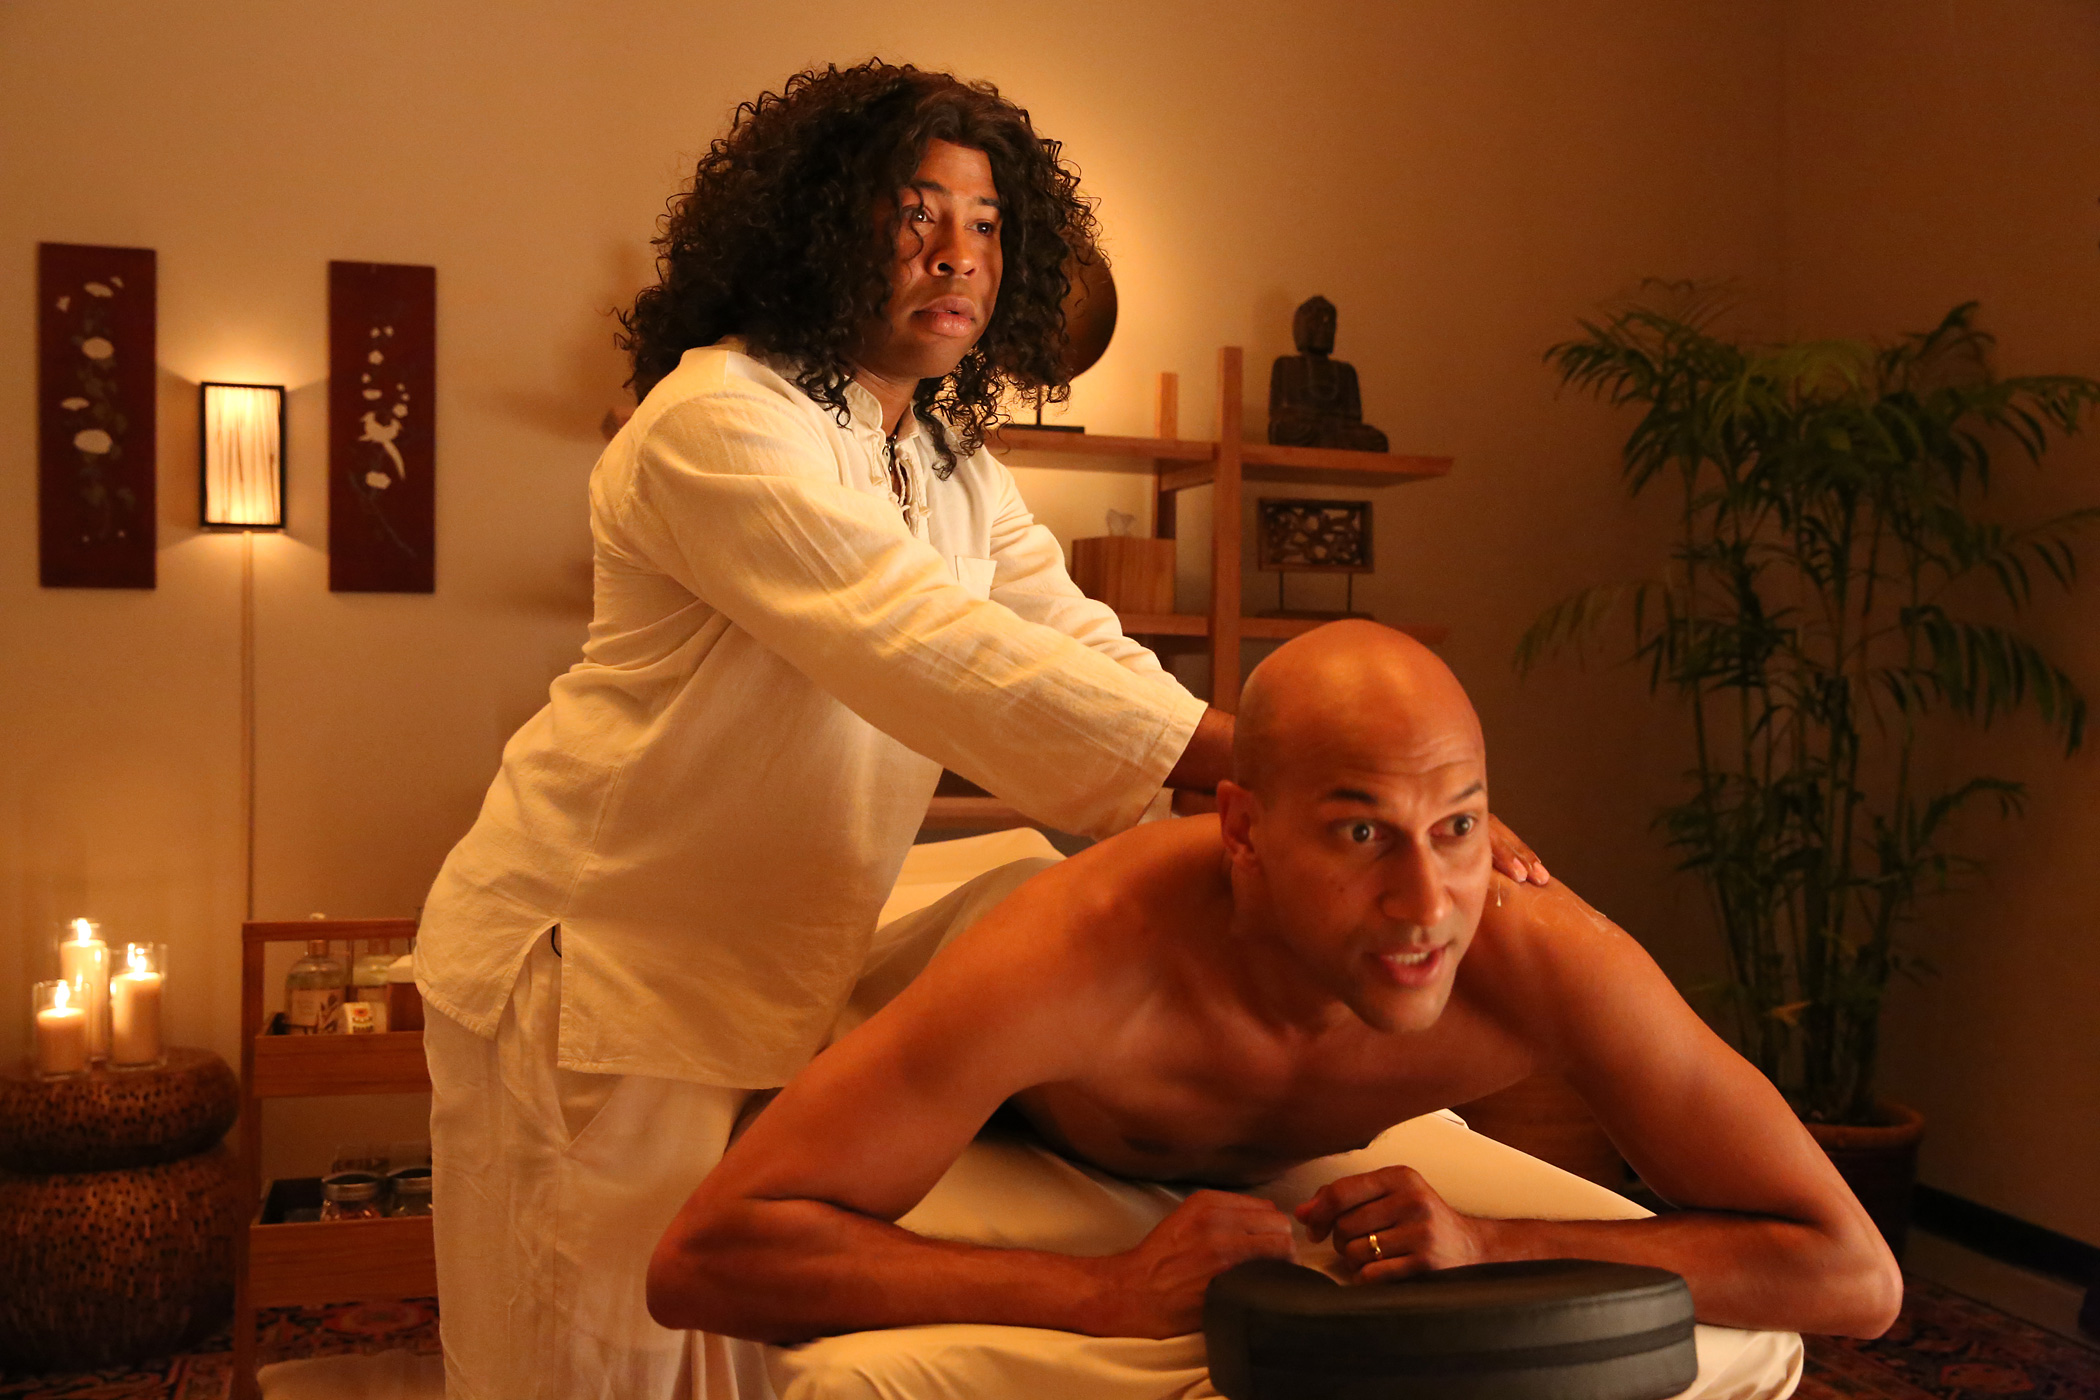 Jordan Peele, Keegan-Michael Key in Season 4 of Key & Peele